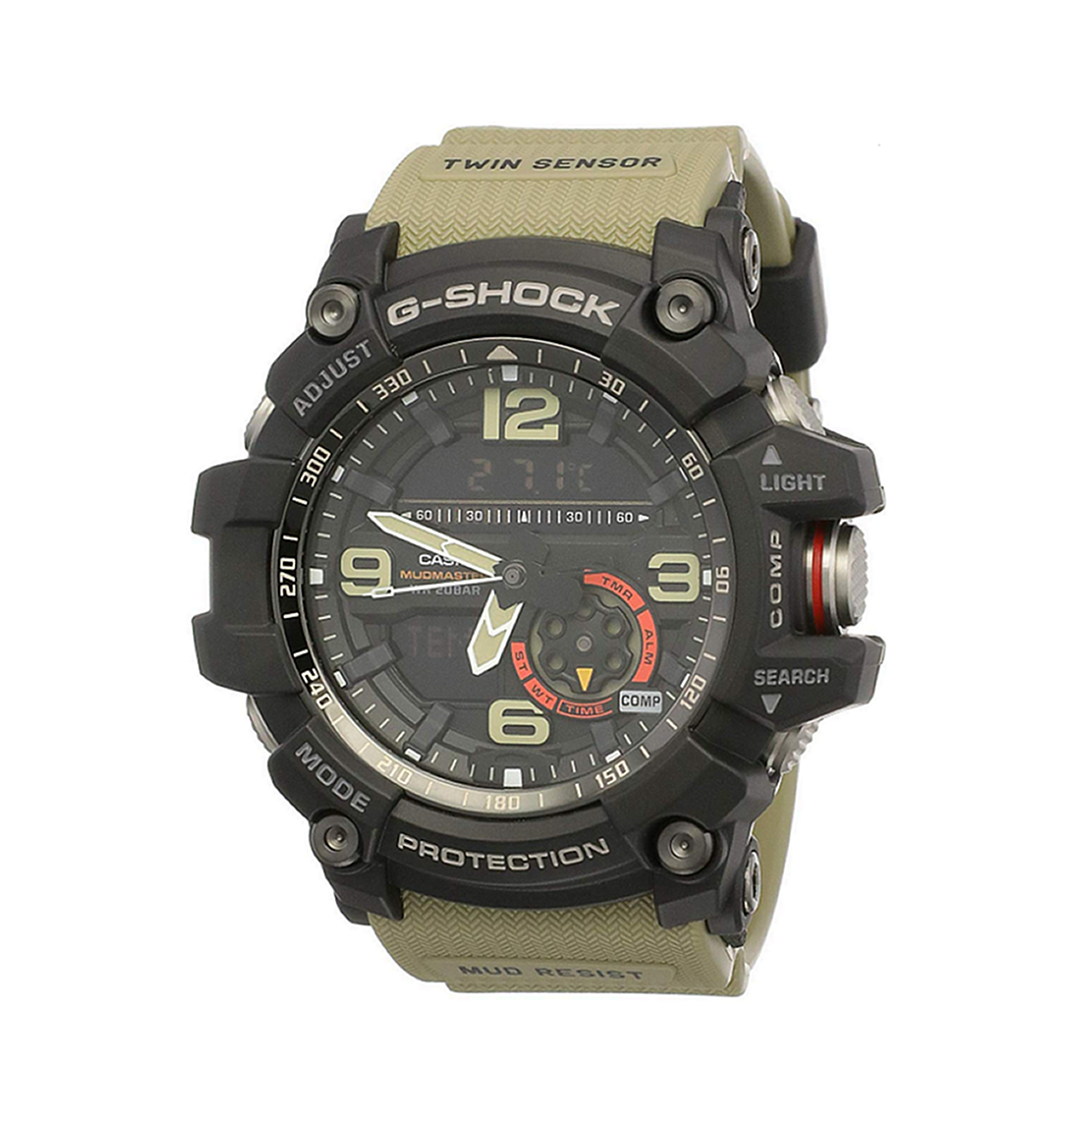 Casio G-Shock Mudmaster GG1000-1A5 Compass Watch